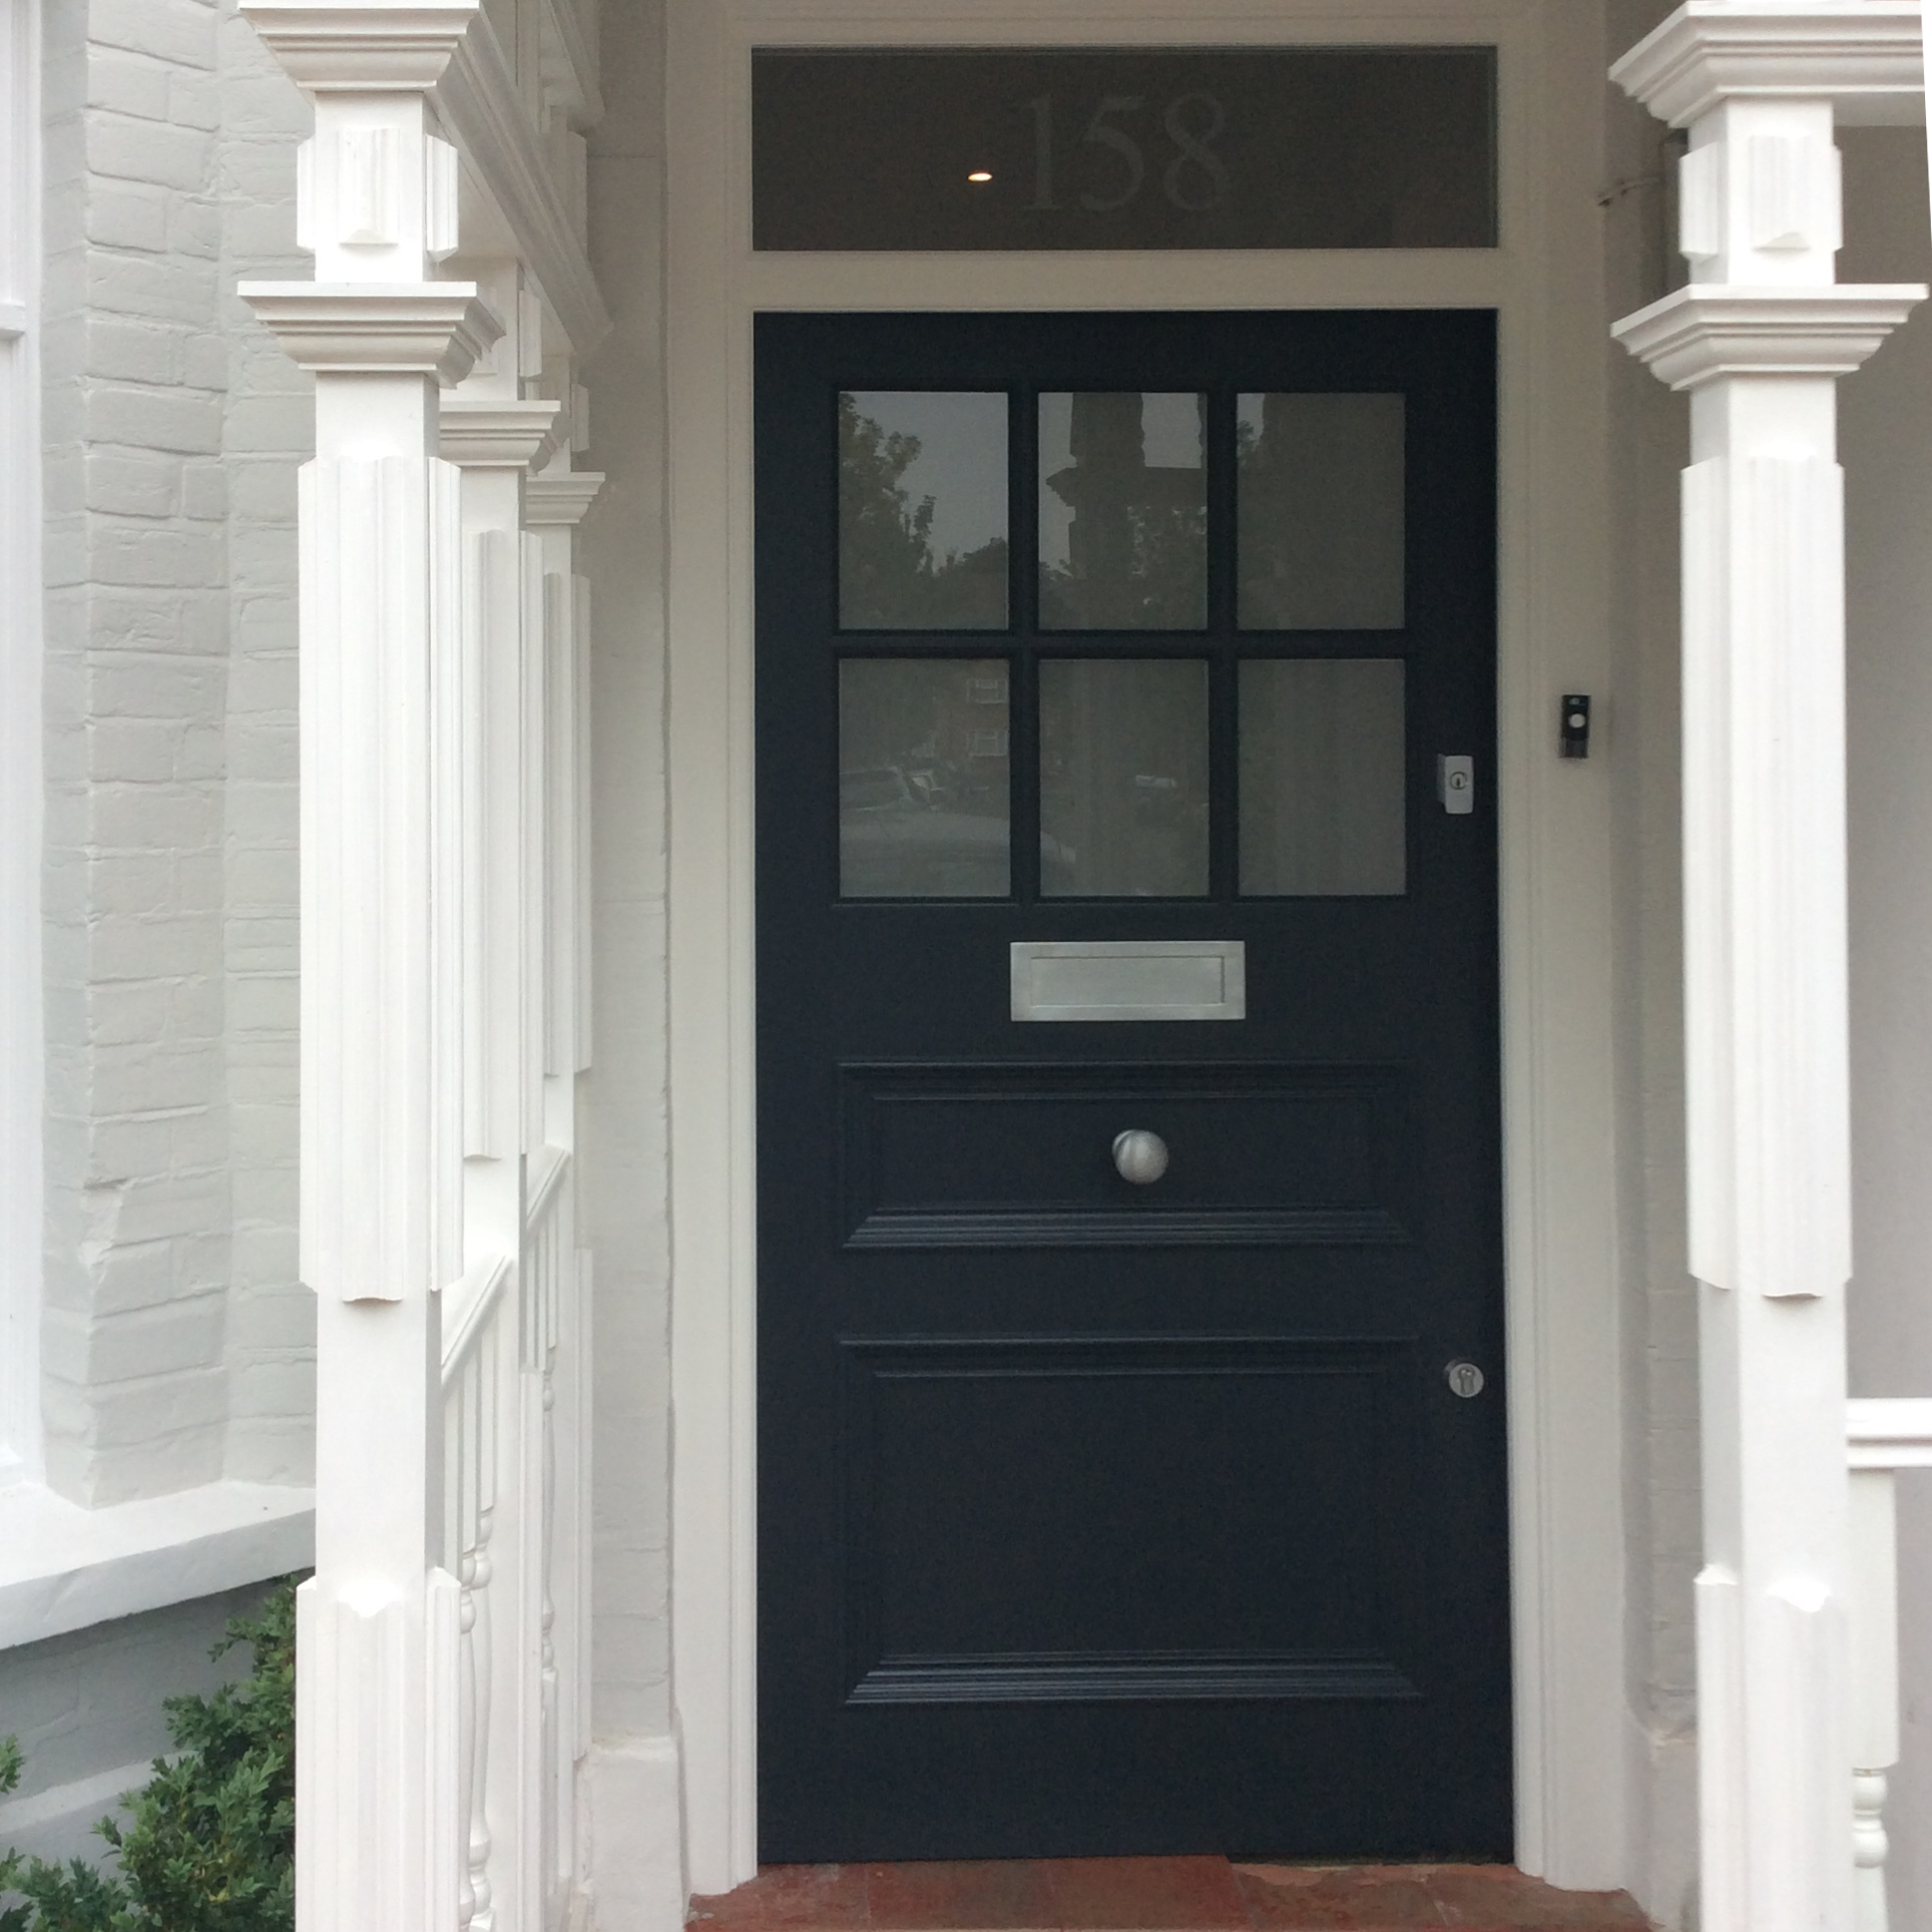 Edwardian front door in South London